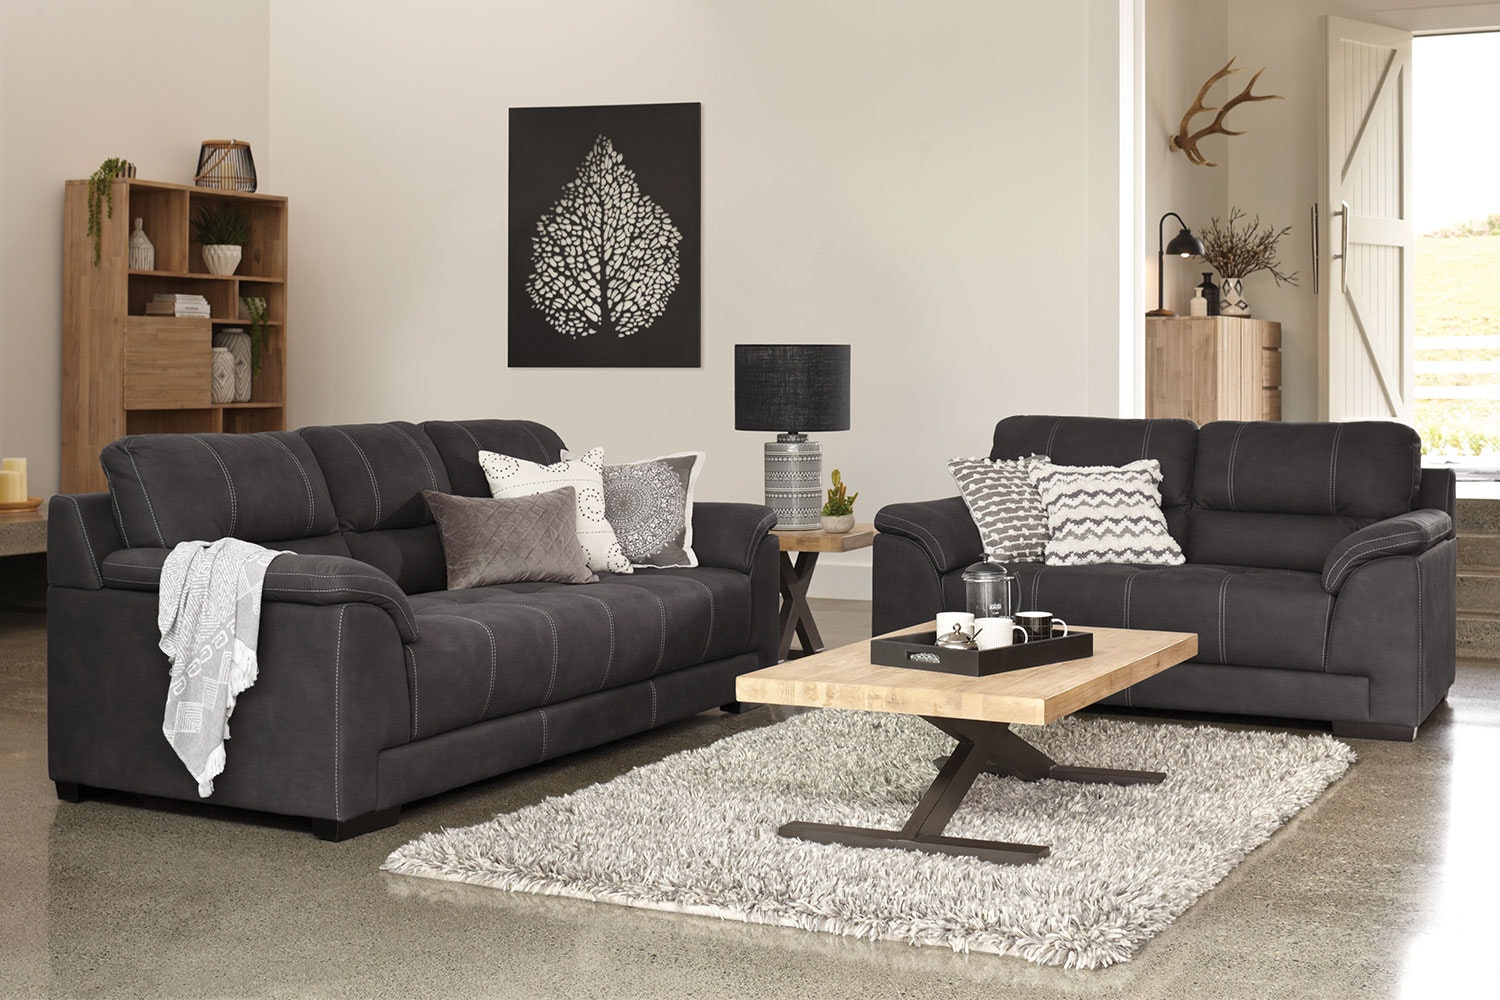 100 Outdoor Furniture Brisbane Harvey Norman Harvey  : 2 piece suite lifestyle from 173.199.118.48 size 1500 x 1000 jpeg 174kB